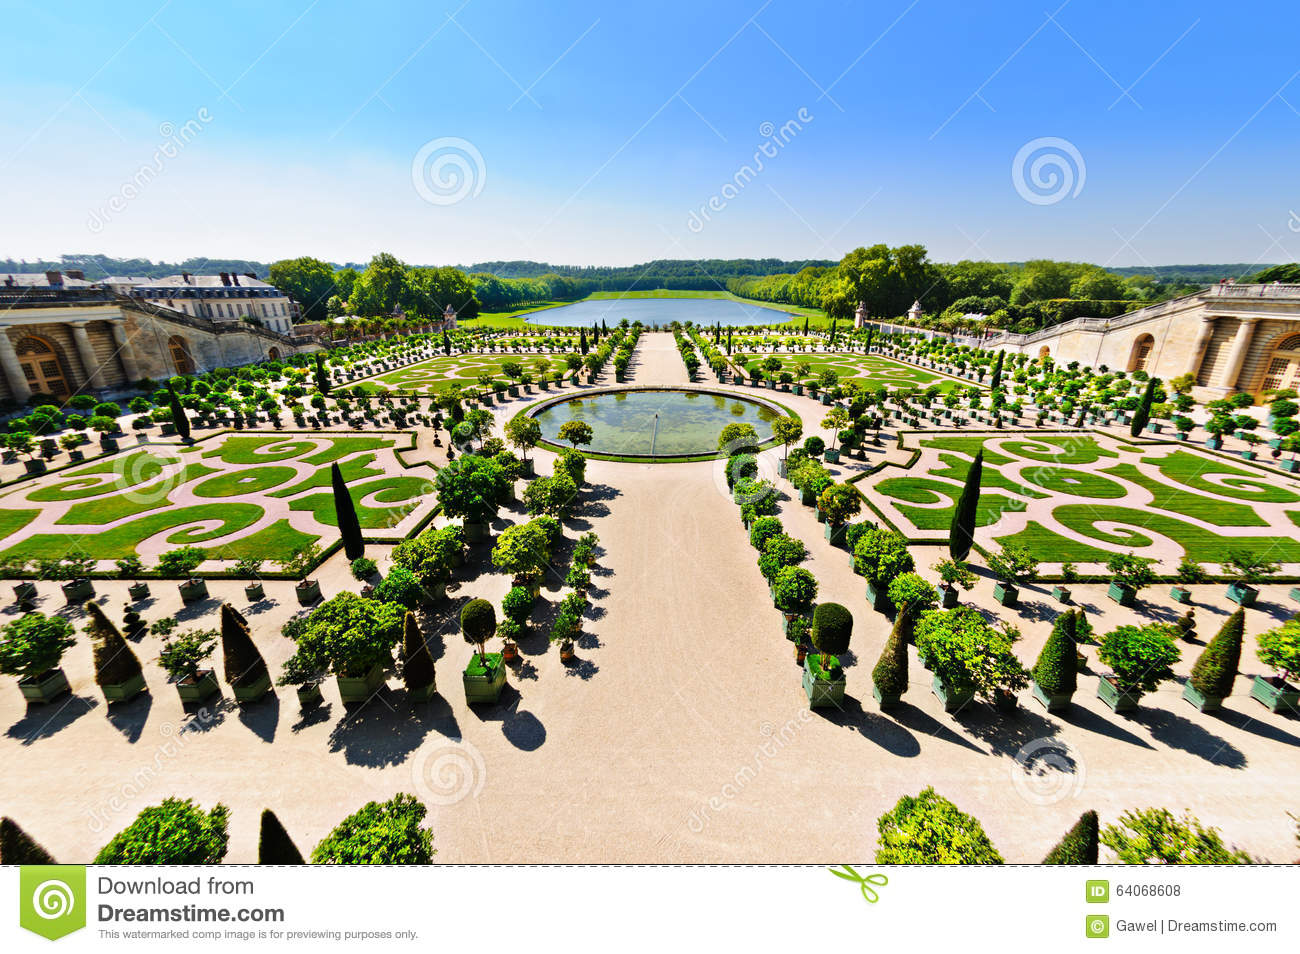 le jardin de versailles paris france photo stock image du horizontal vieux 64068608. Black Bedroom Furniture Sets. Home Design Ideas